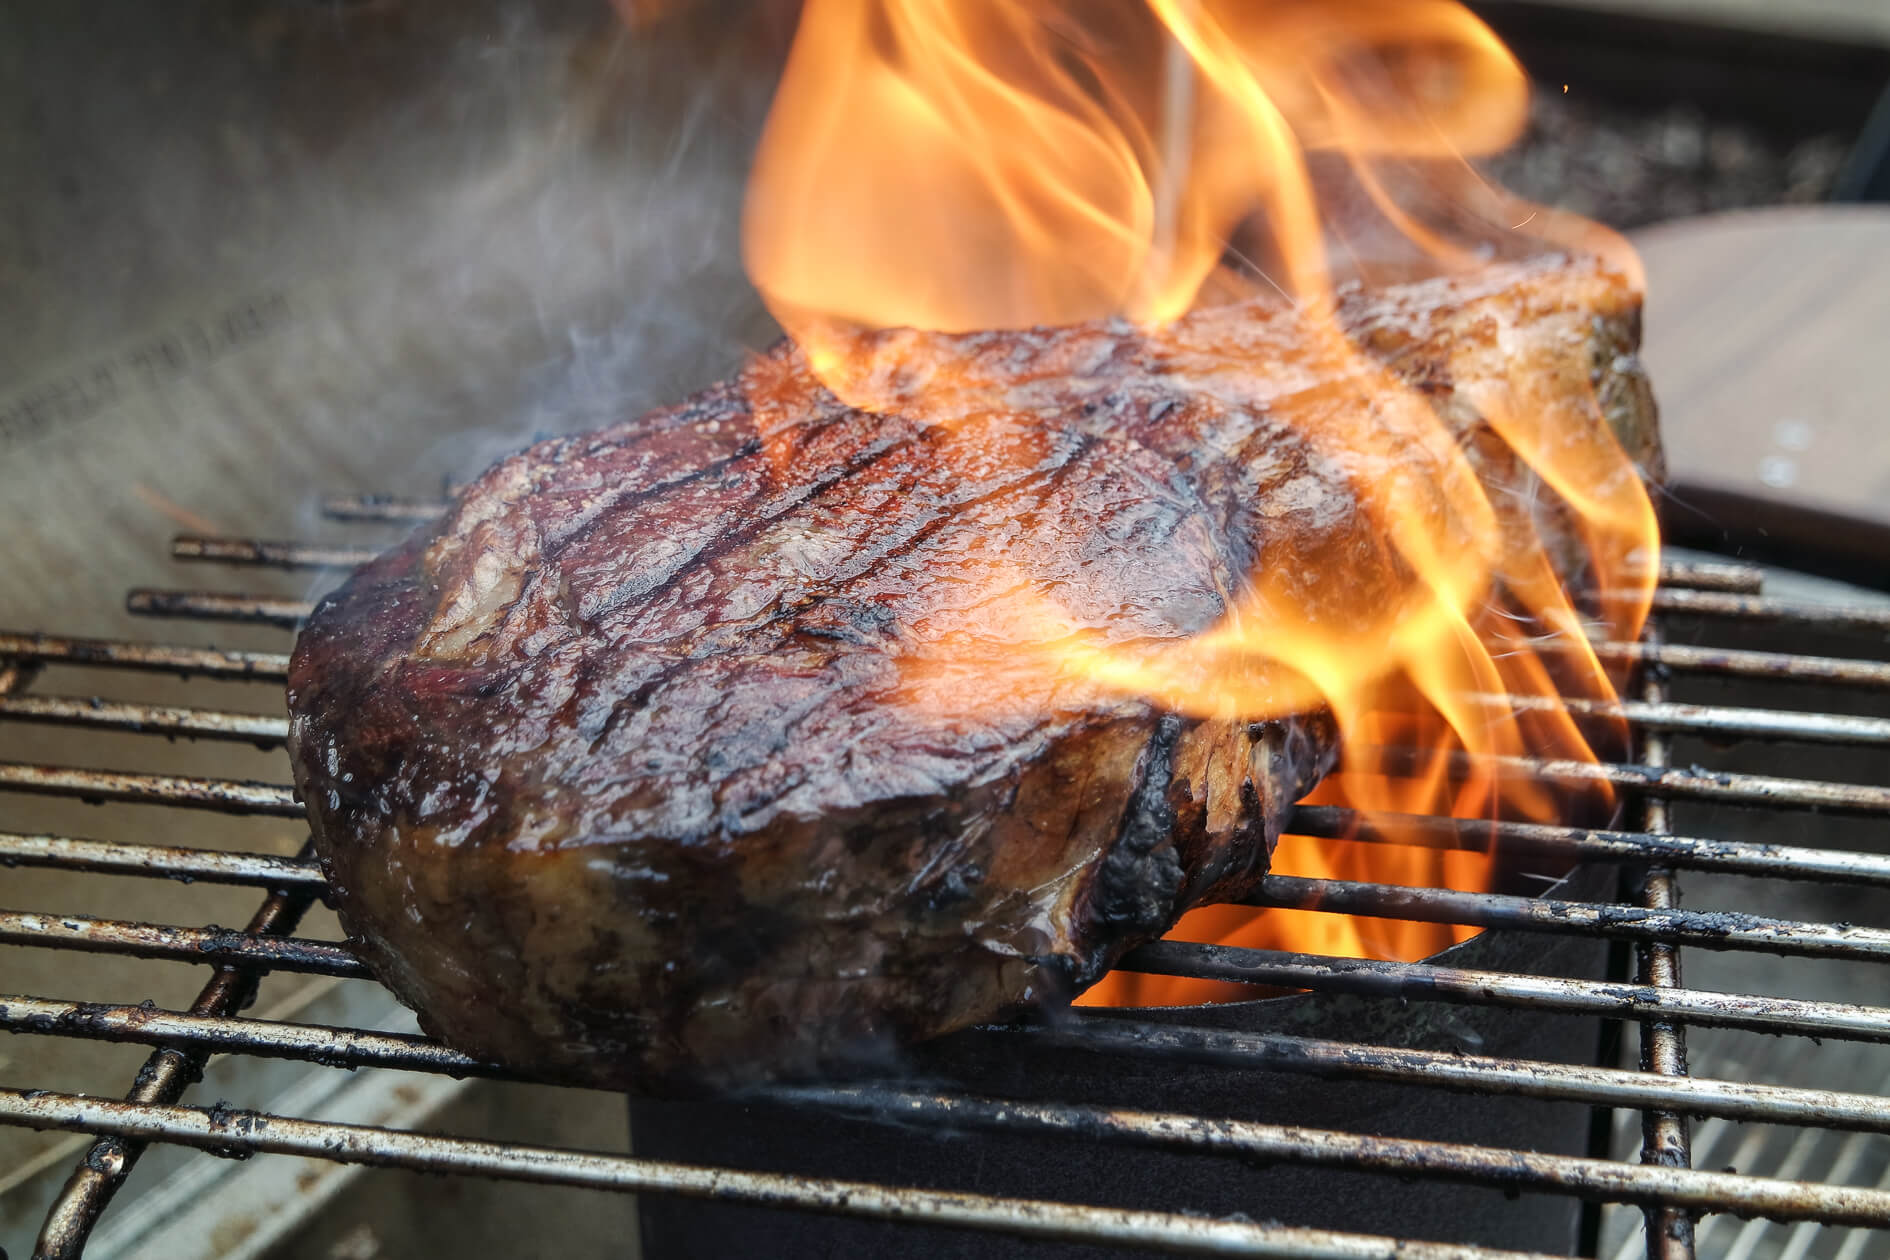 How to Sear Steaks on the Grill